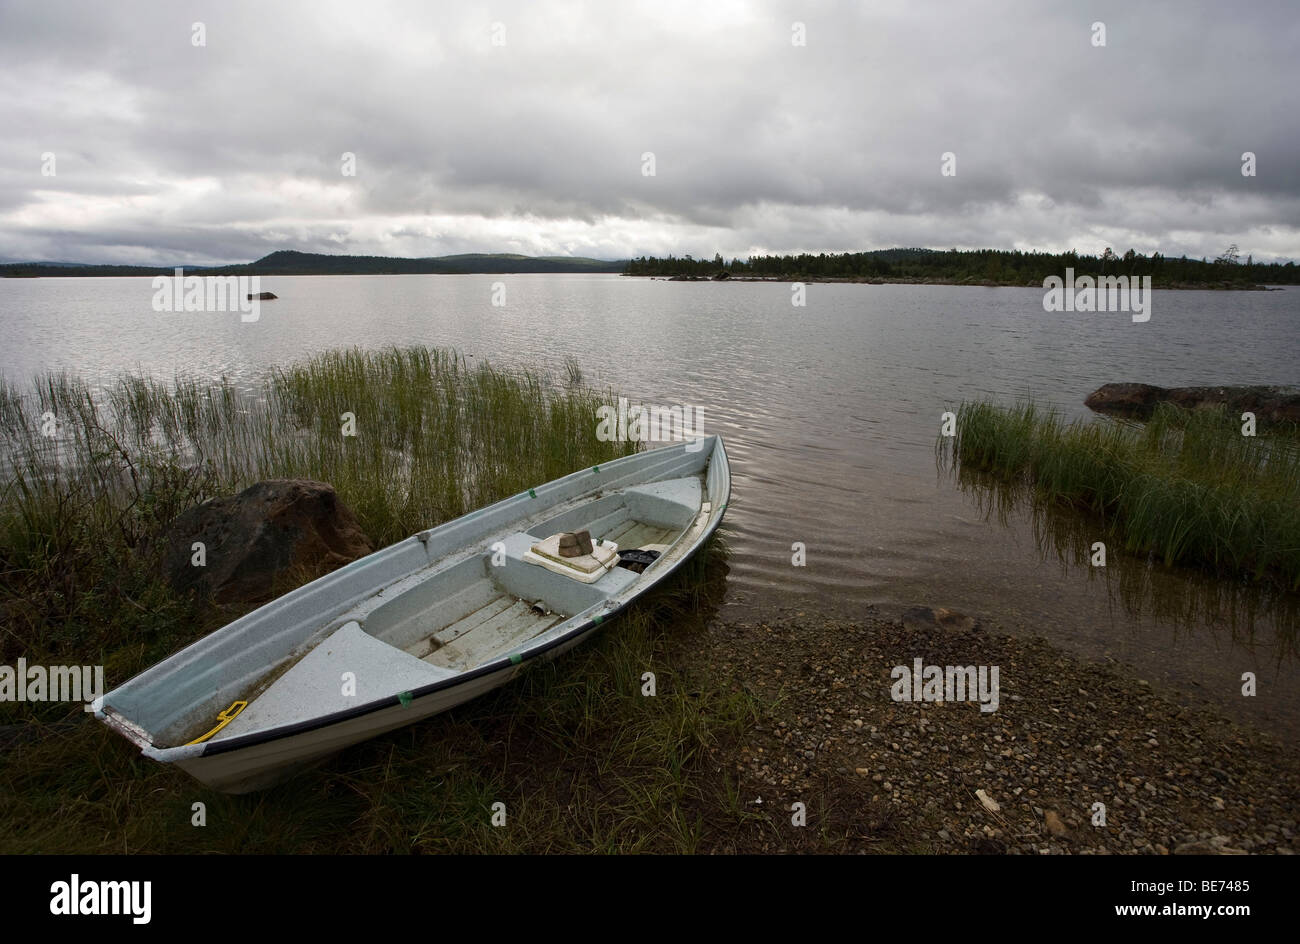 Rowboat on Lake Inari, Finland, Europe - Stock Image